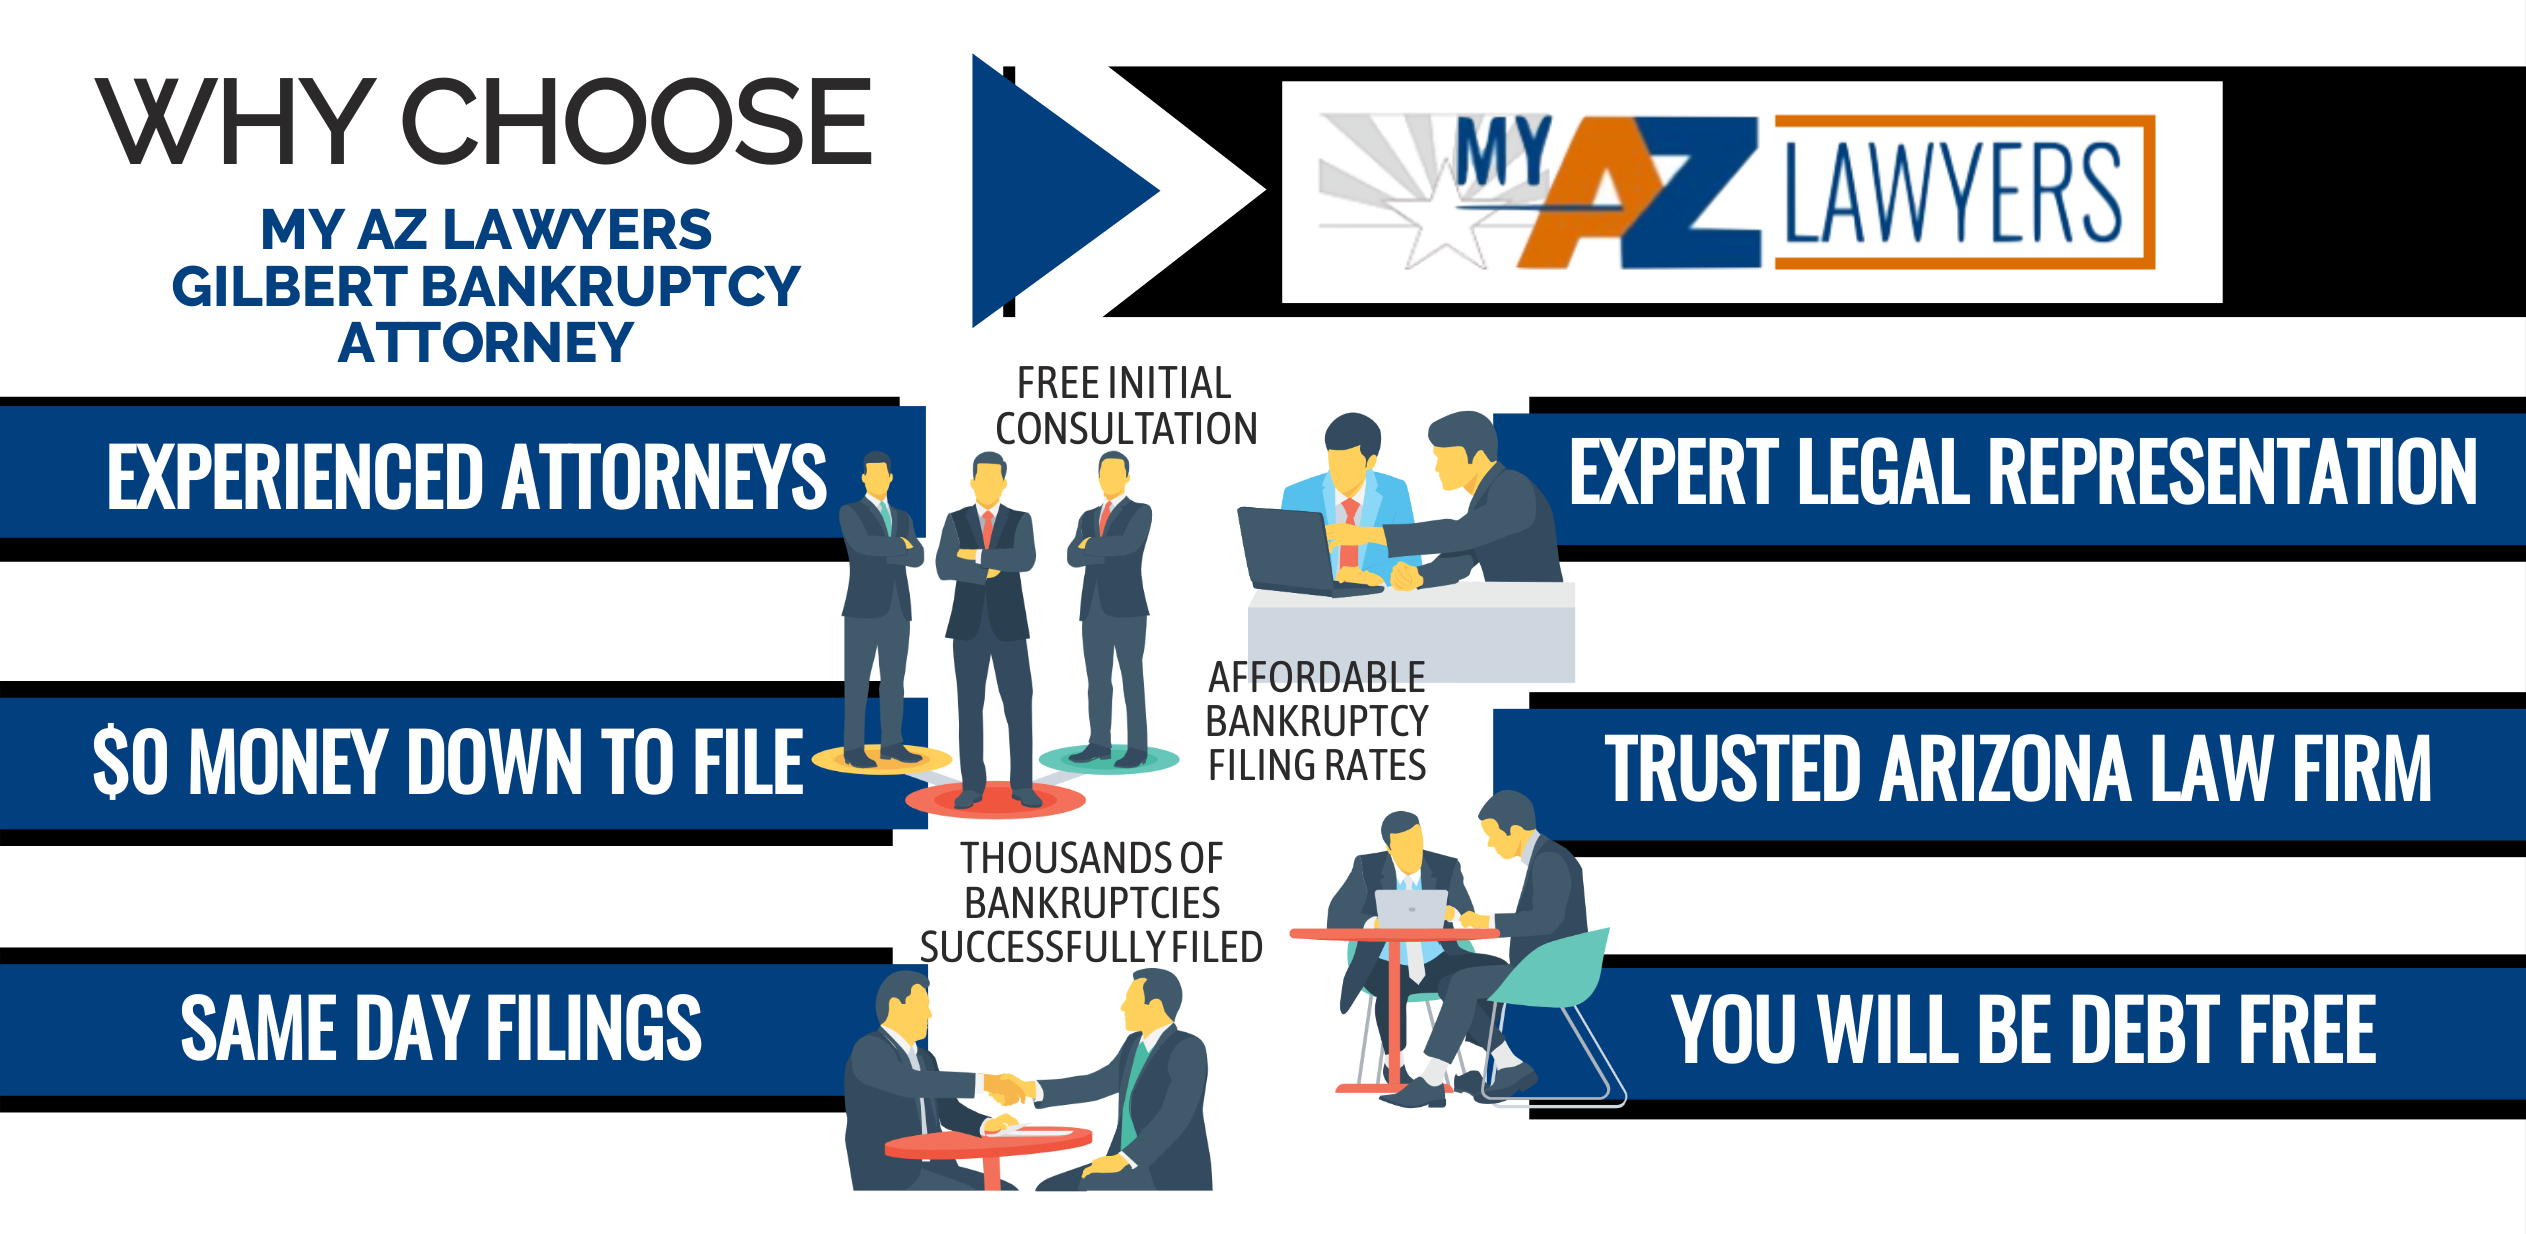 Why choose our bankruptcy attorneys infographic